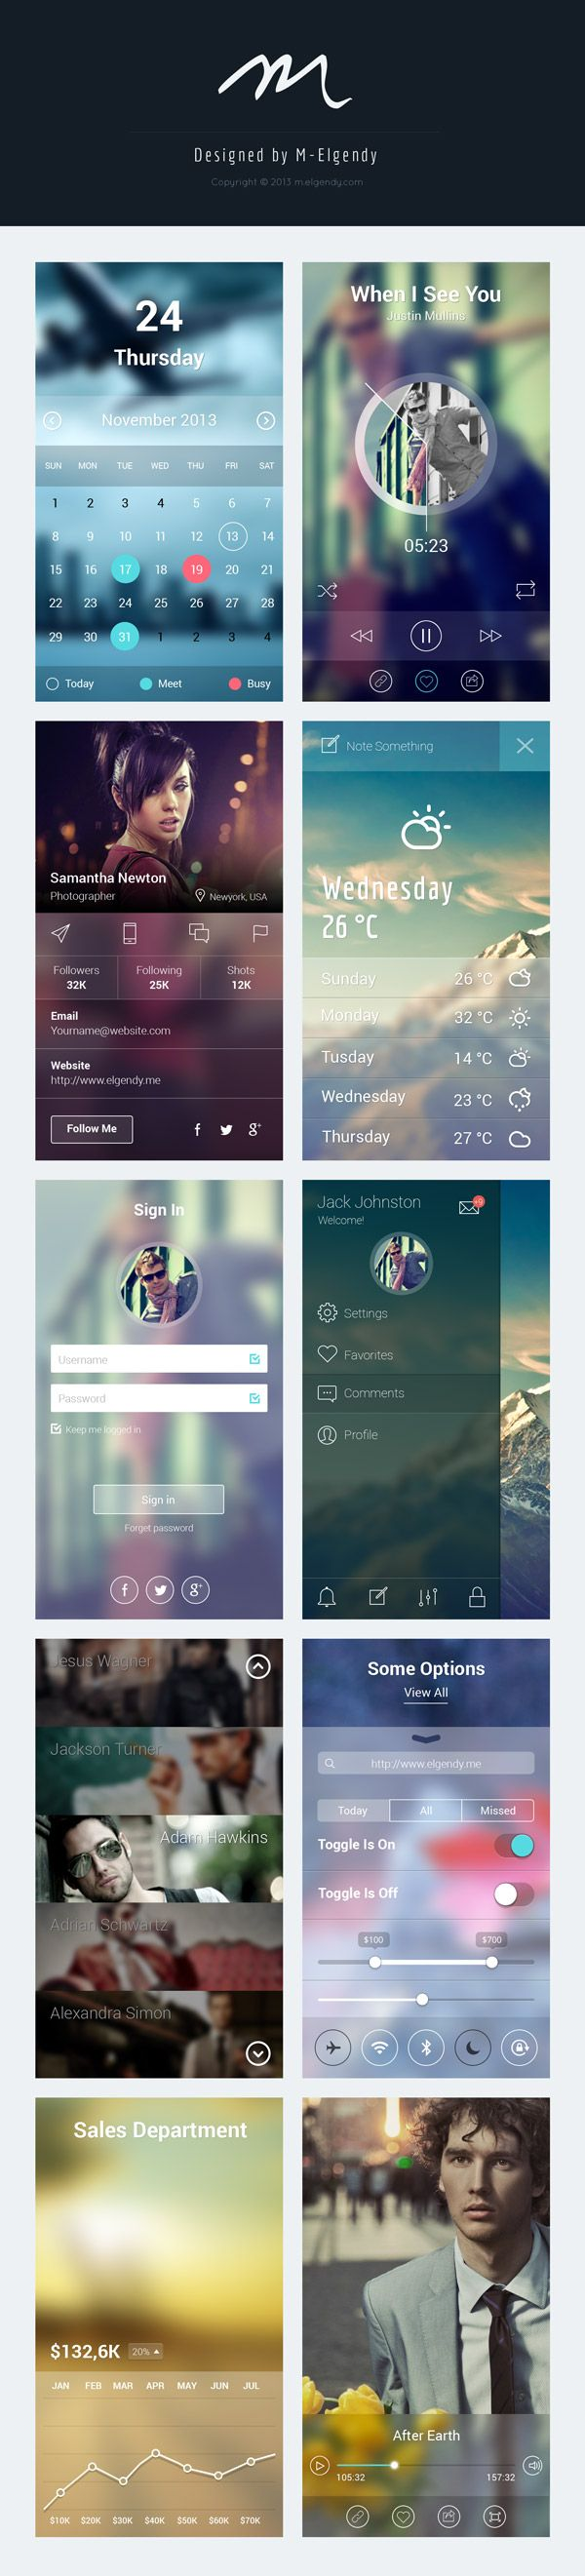 Screens ui kit in ios 7 style - Templates